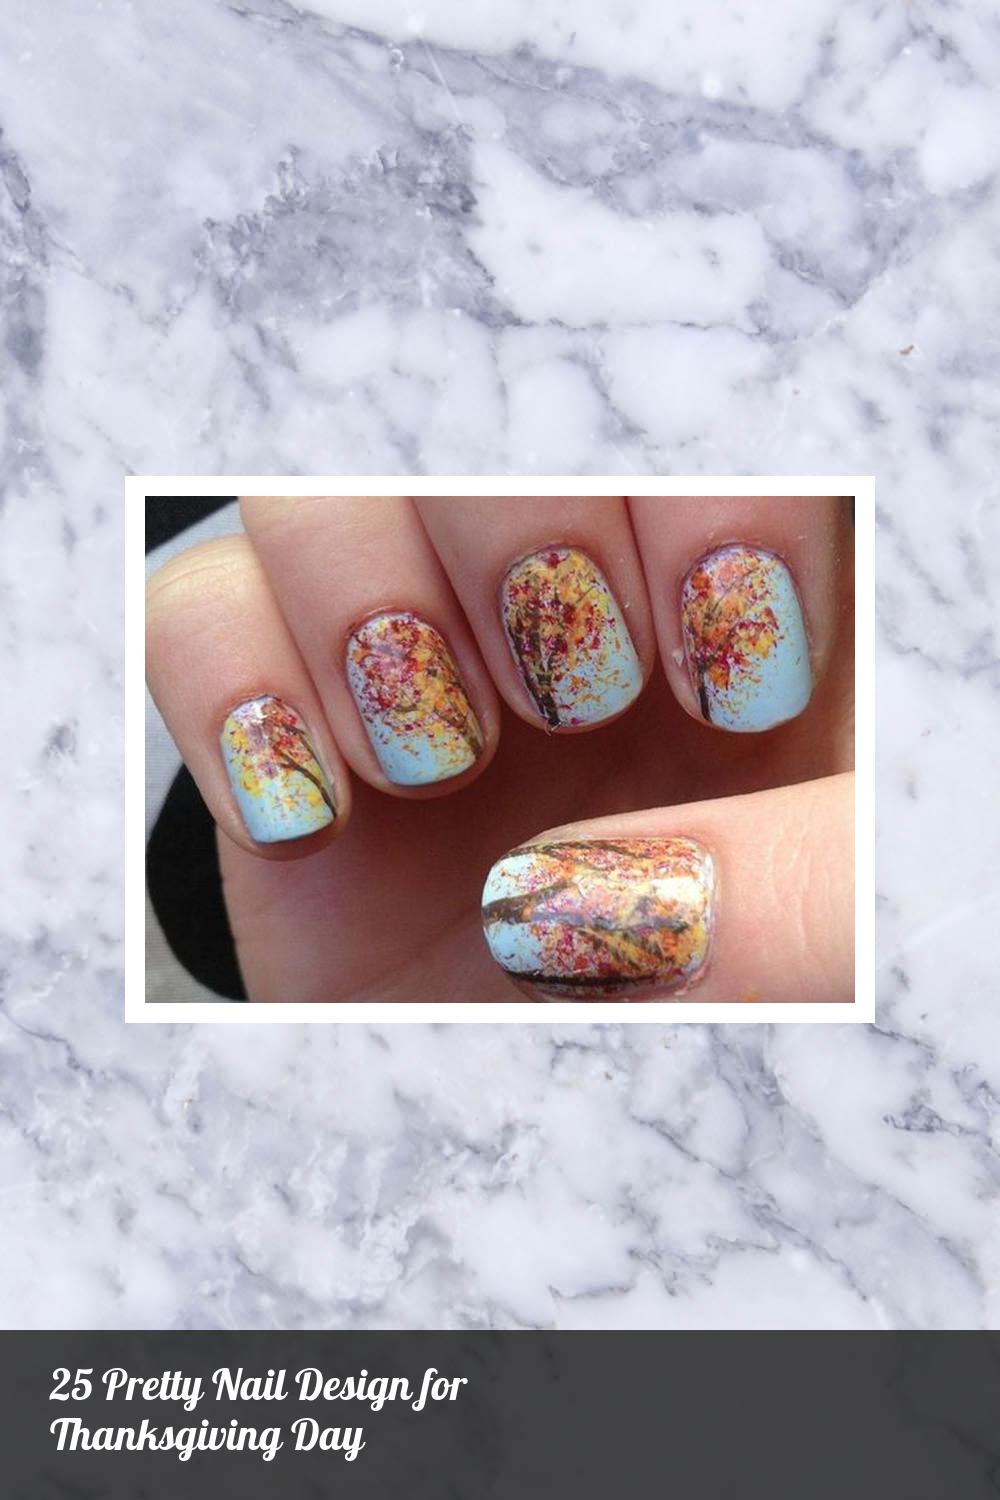 25 Pretty Nail Design for Thanksgiving Day 18